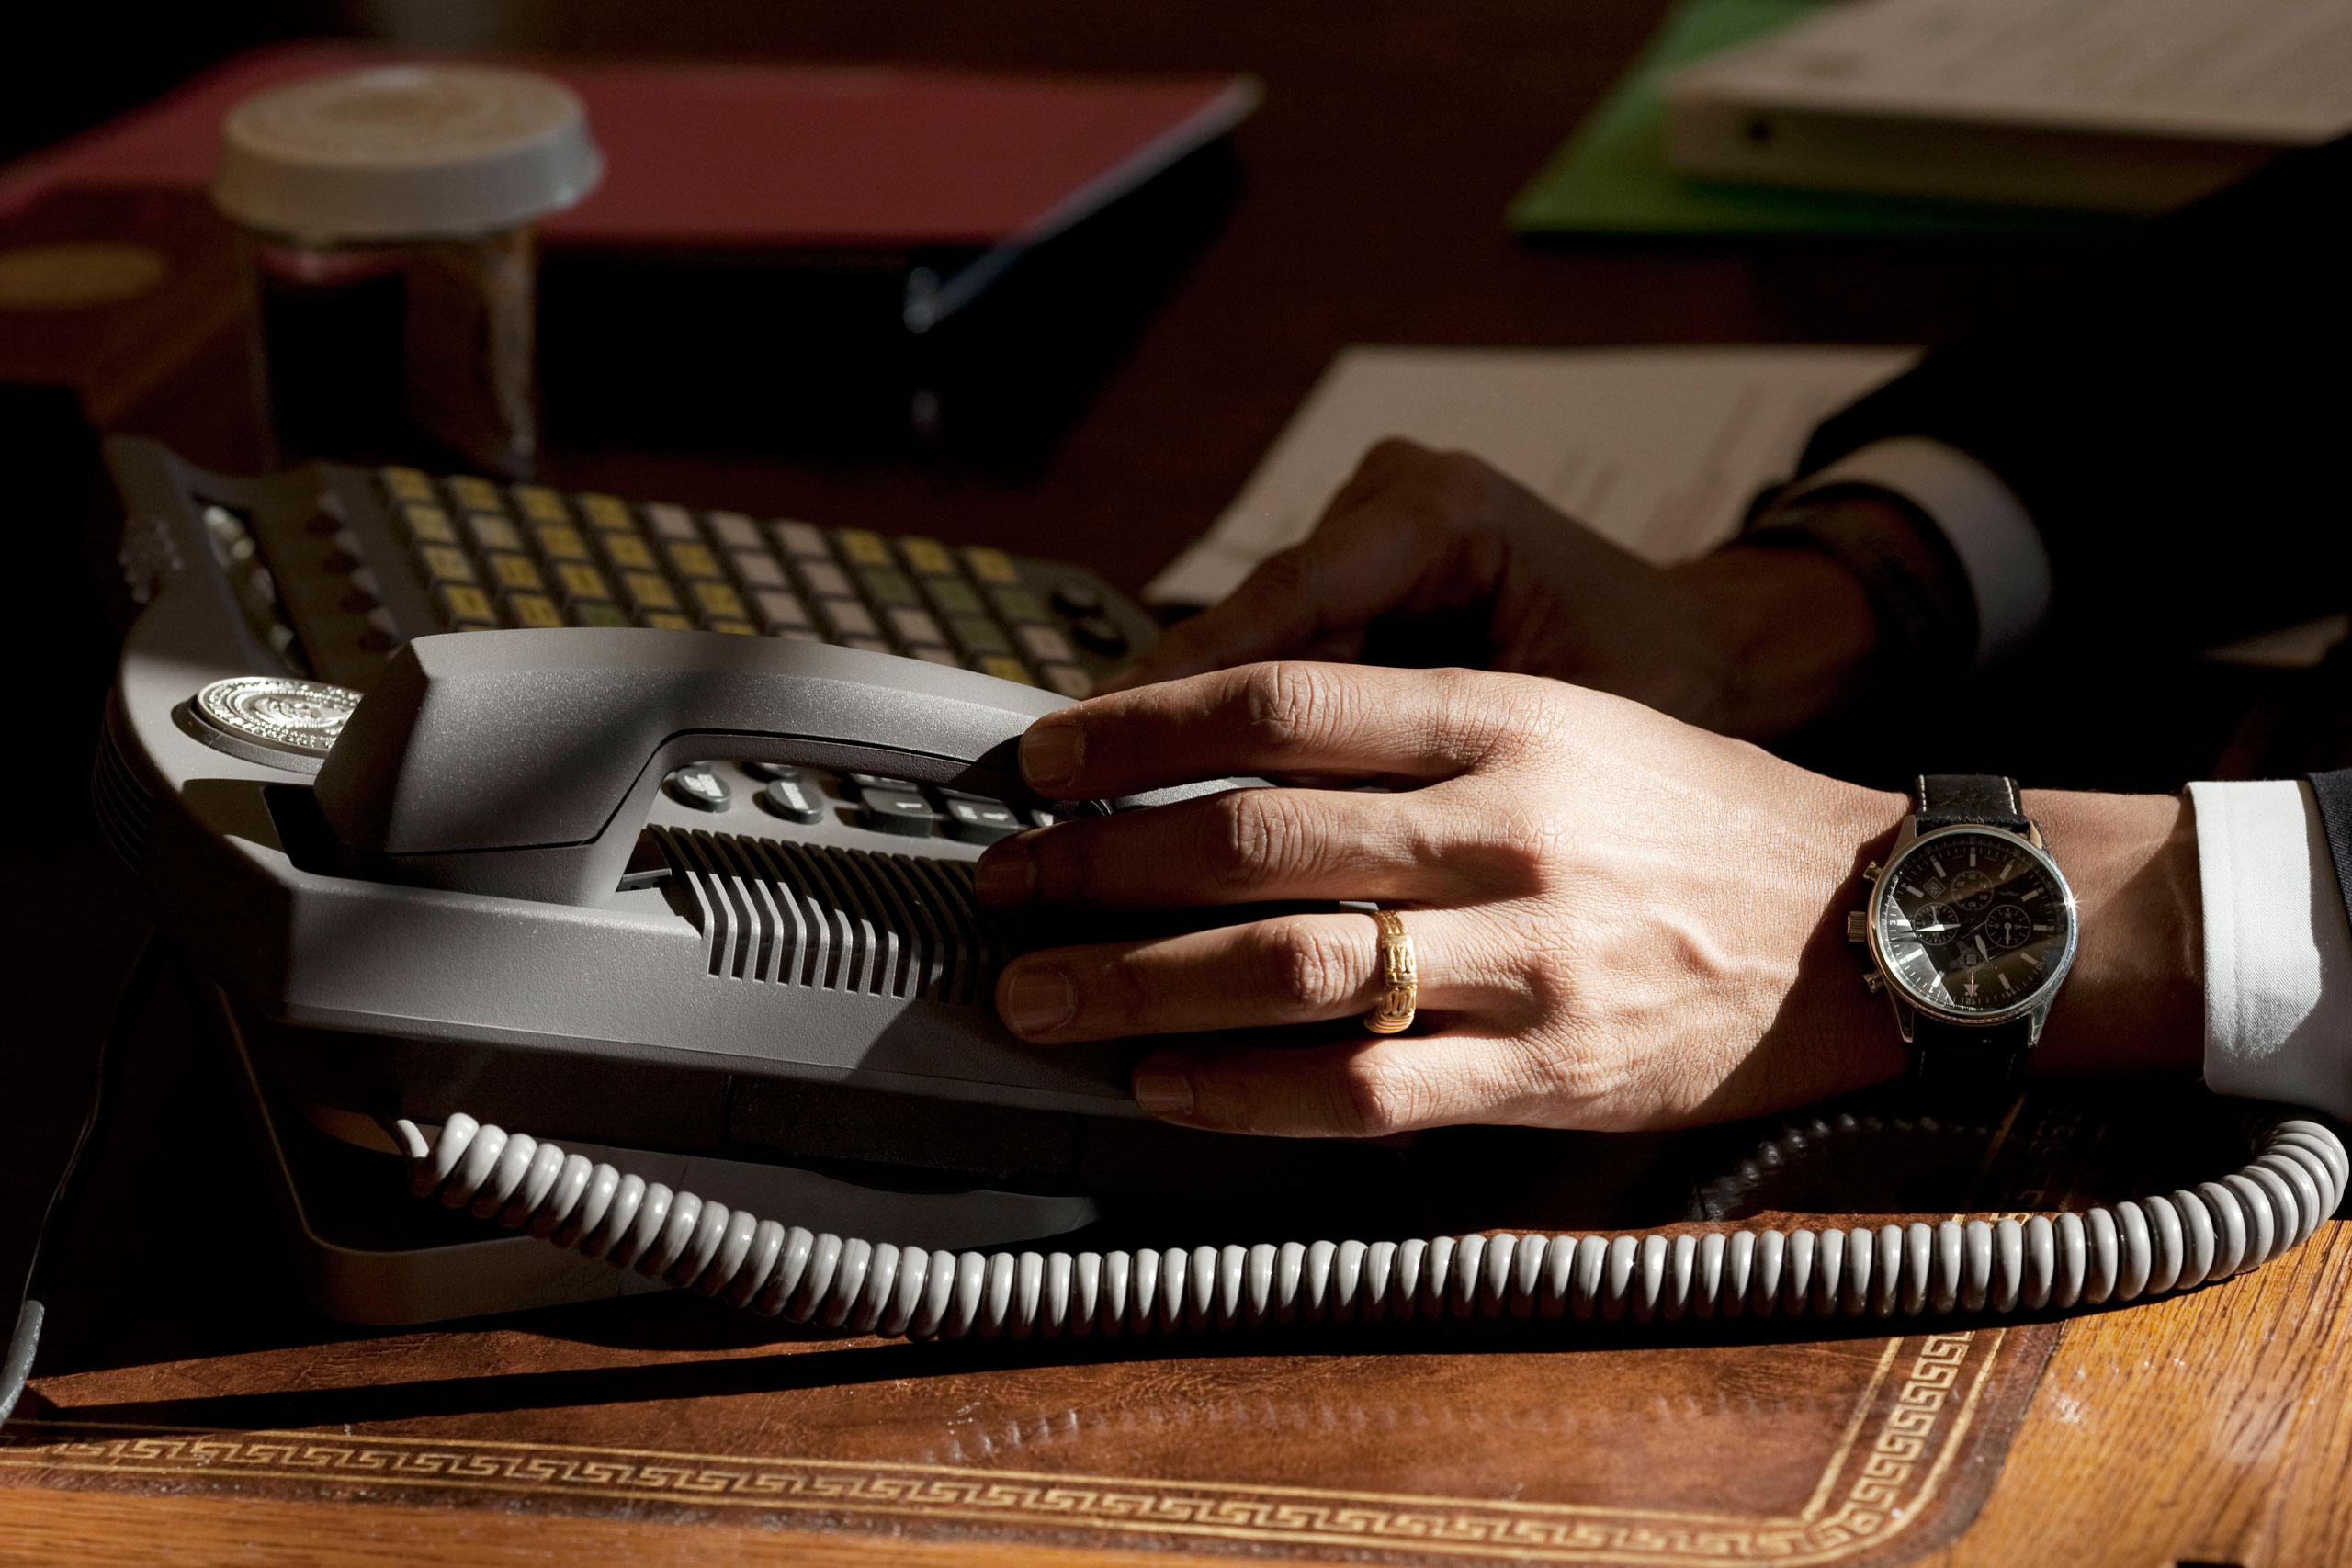 The President was about to answer the phone when I noticed how the sun light streaming through the window illuminated his hand,  Jan. 23, 2009.